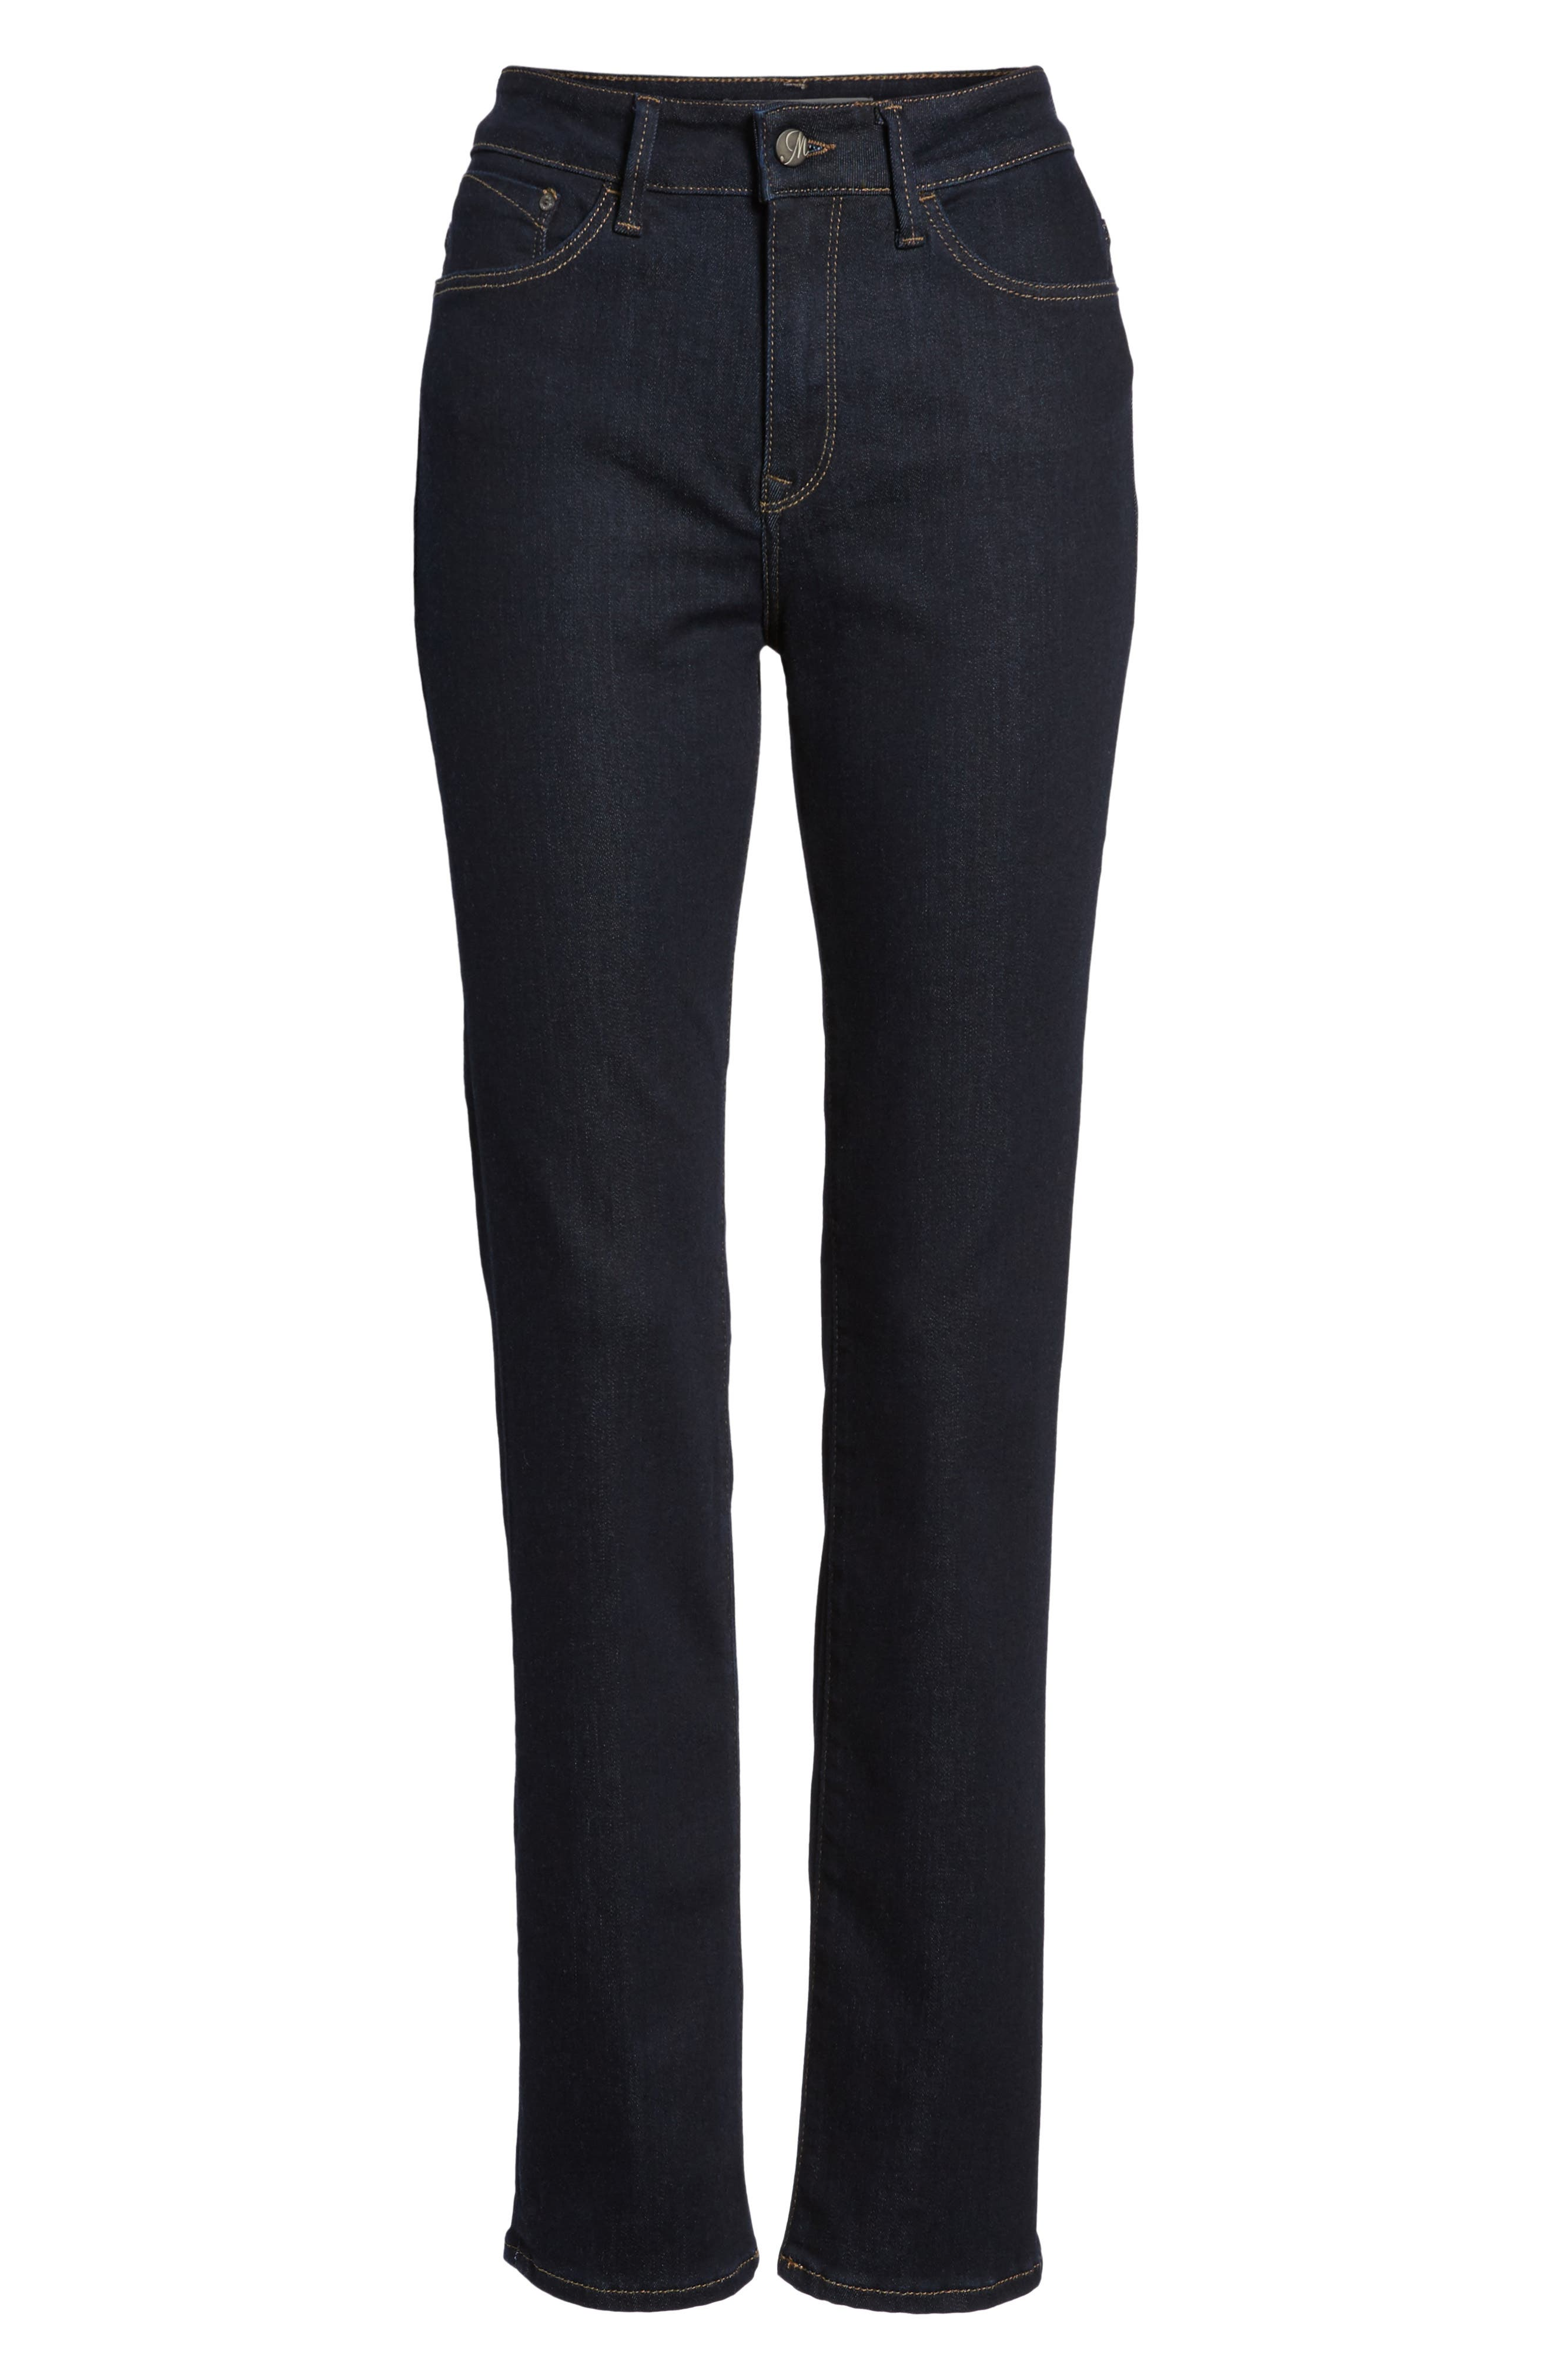 Kendra Supersoft Straight Leg Jeans,                             Alternate thumbnail 7, color,                             RINSE SUPER SOFT